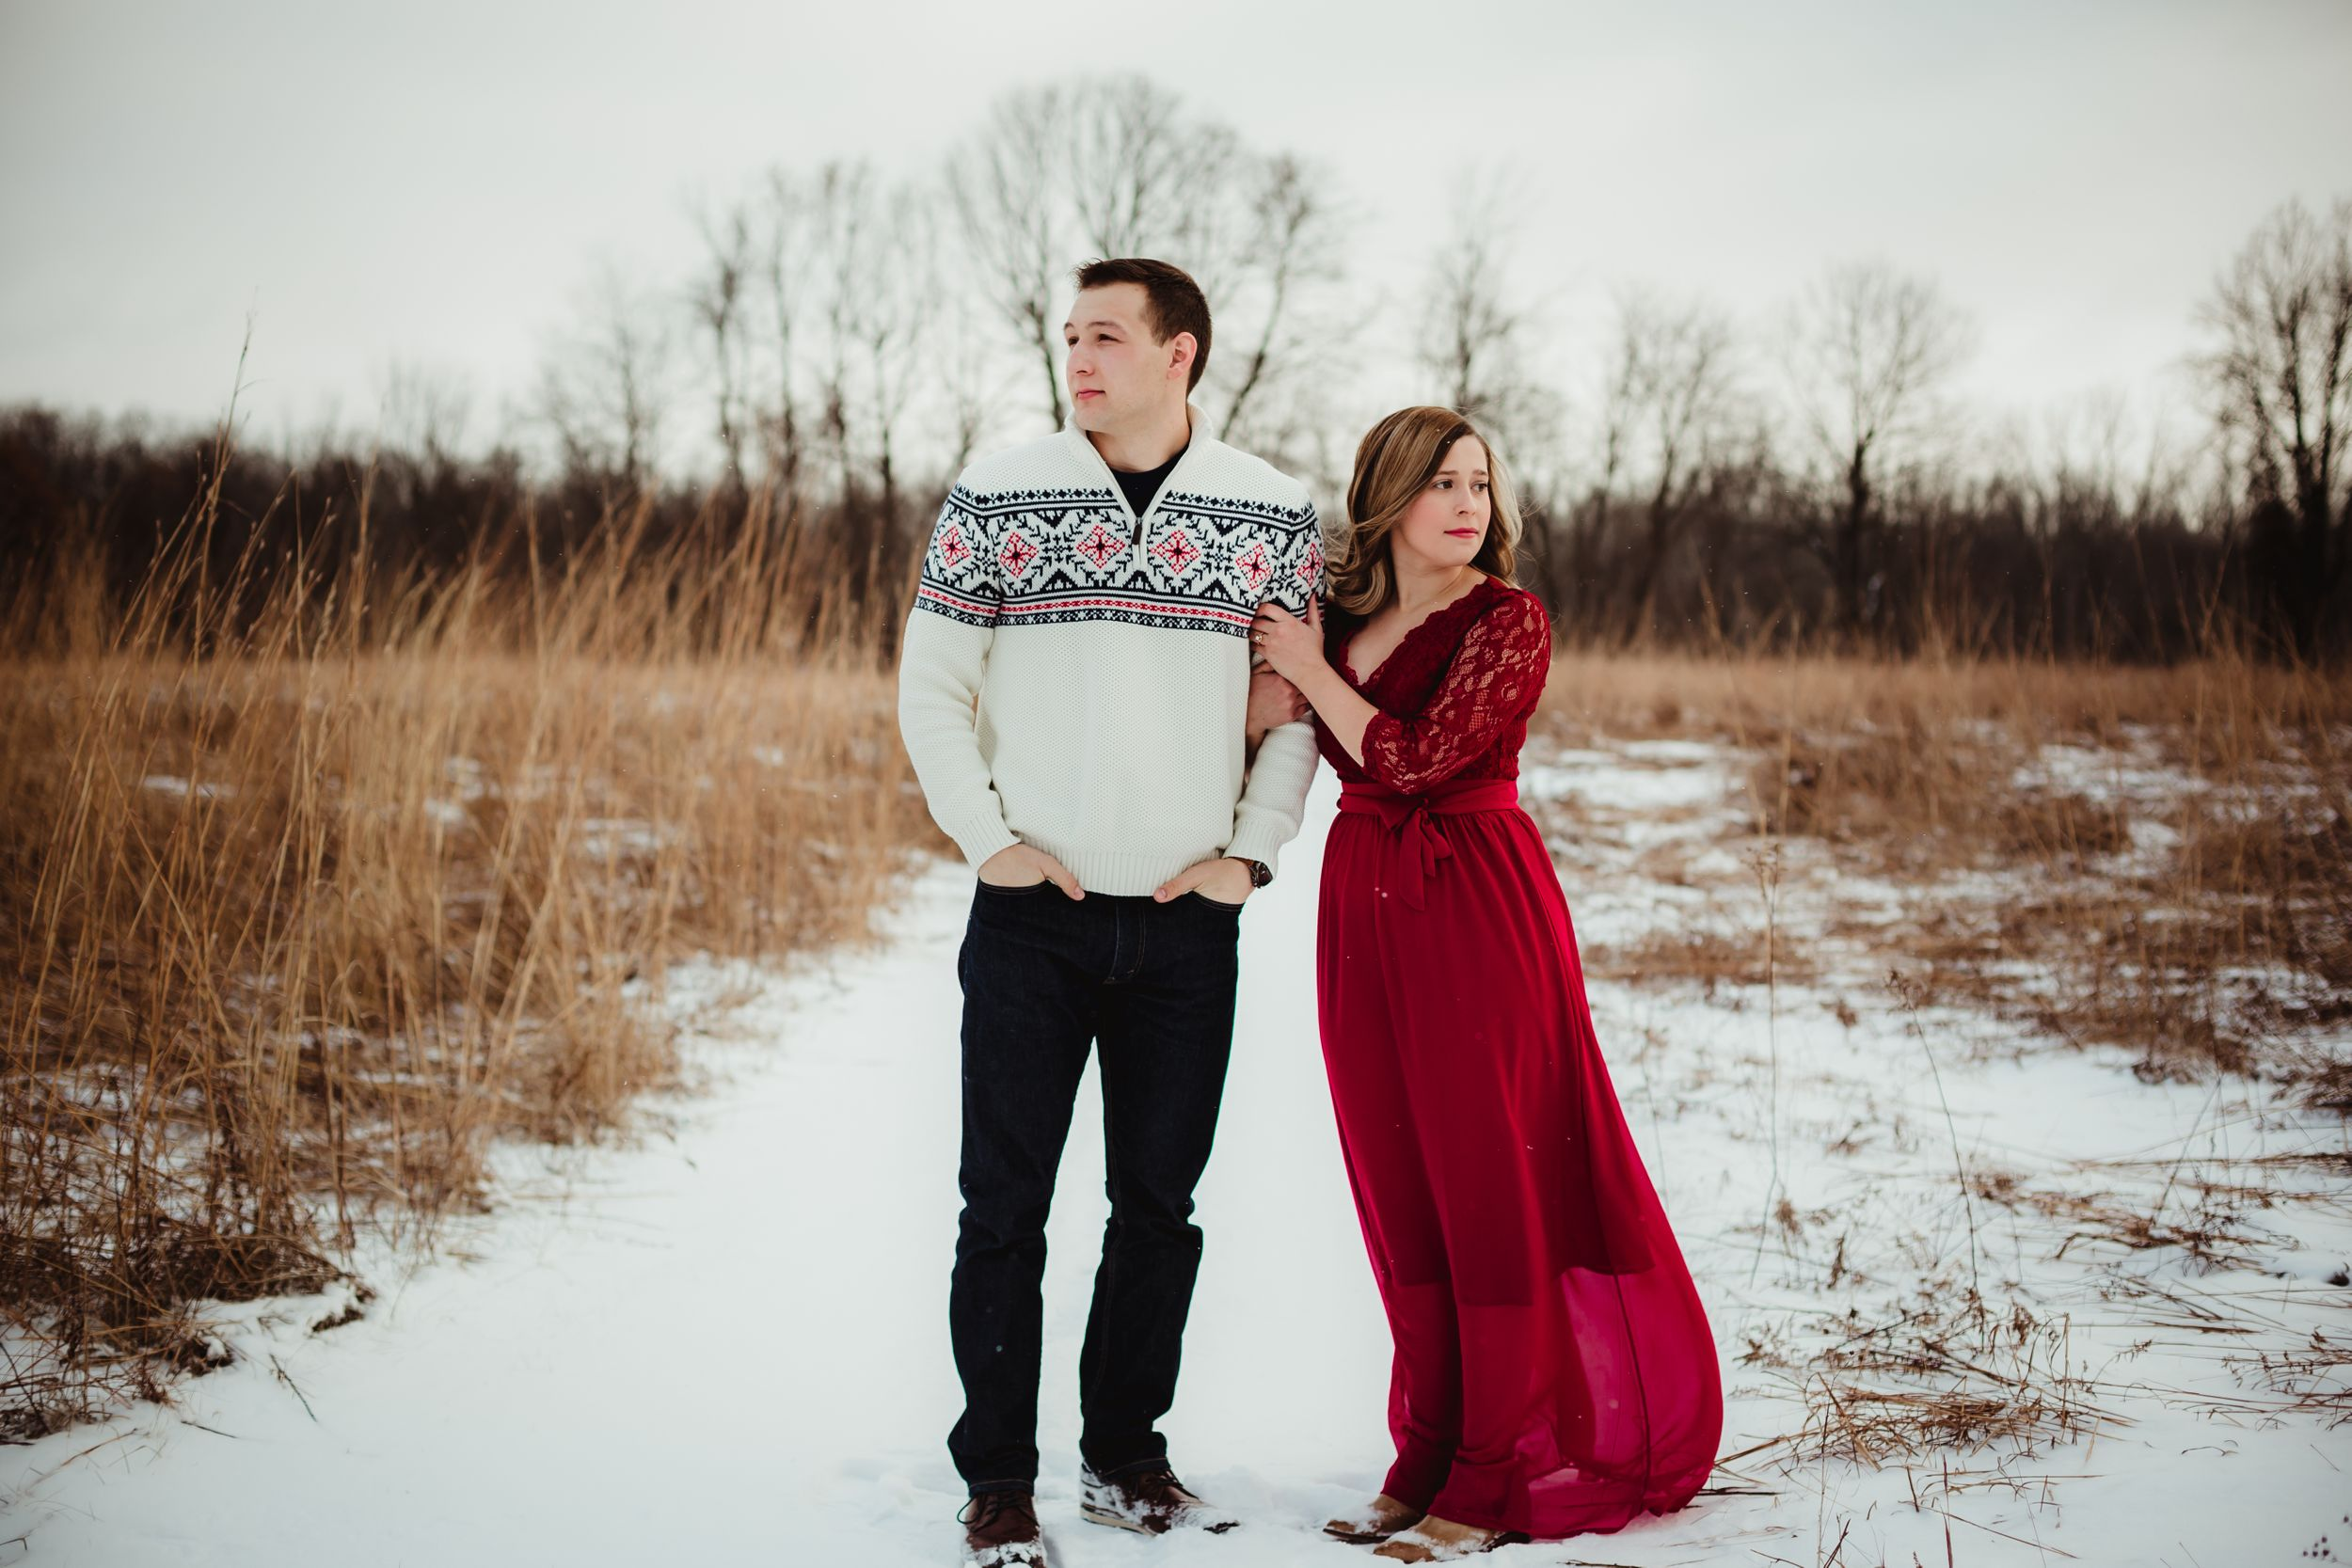 A woman holding a man's arm looking opposite directions. It is winter and she has a long red dress.